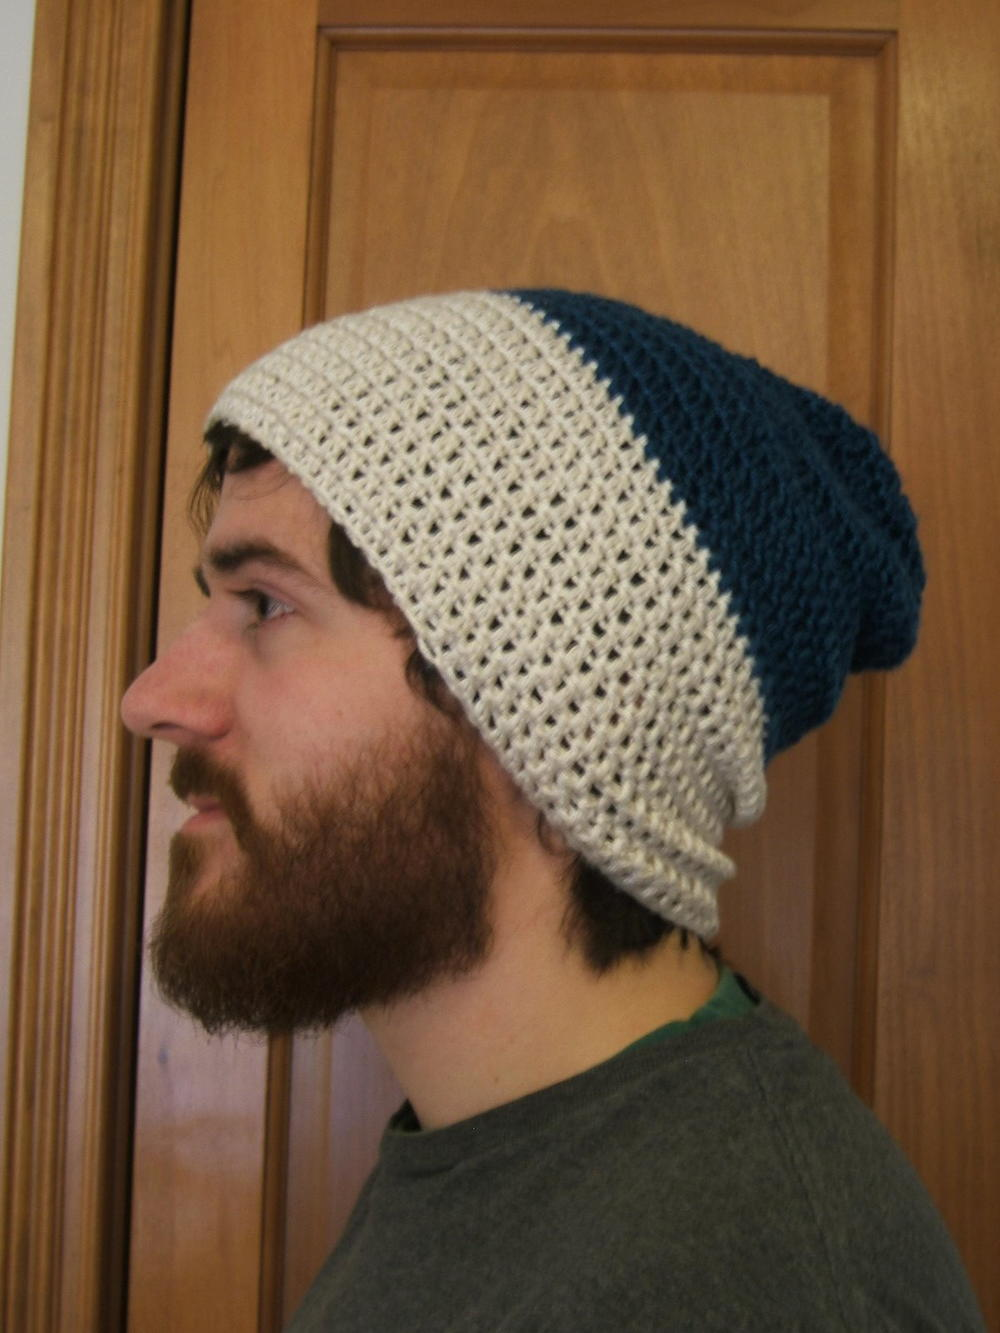 Crochet men's hat Crochet hats Crochet Slouchy Hat Crochet scarves Fiber Arts 6: Knit & Crochet Slouch Hats Crochet Hat for Men Red Heart - crochet patterns Free Crochet Men Scarf Knitting And Crocheting Ornaments Ponchos Knitted beanies Socks Scarves Fingerless Gloves Scarf Head Yarns Accessories Hoods Handarbeit Tutorials Knitting - Hats.